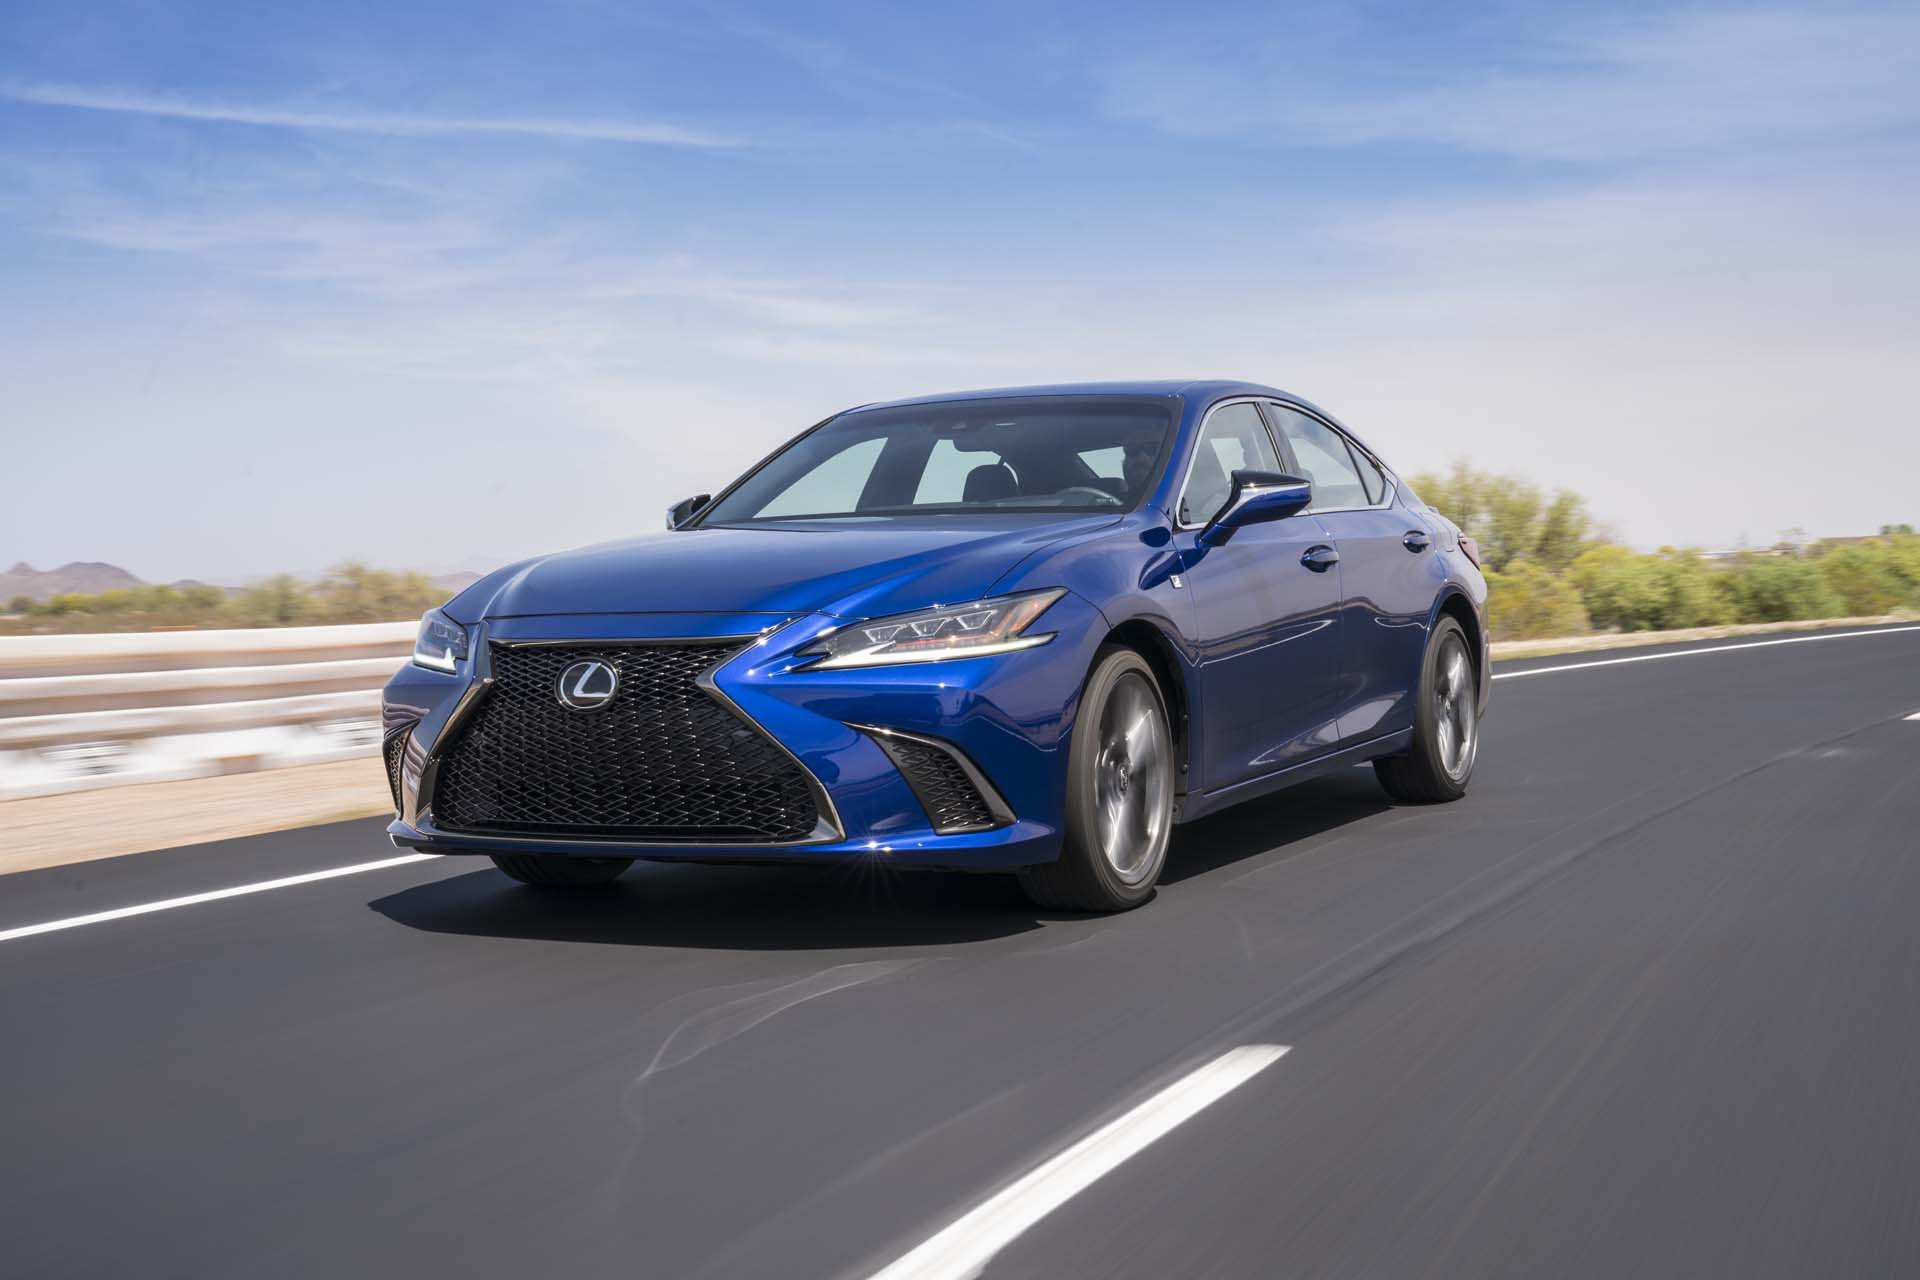 84 The Best Are The 2019 Lexus Out Yet Prices